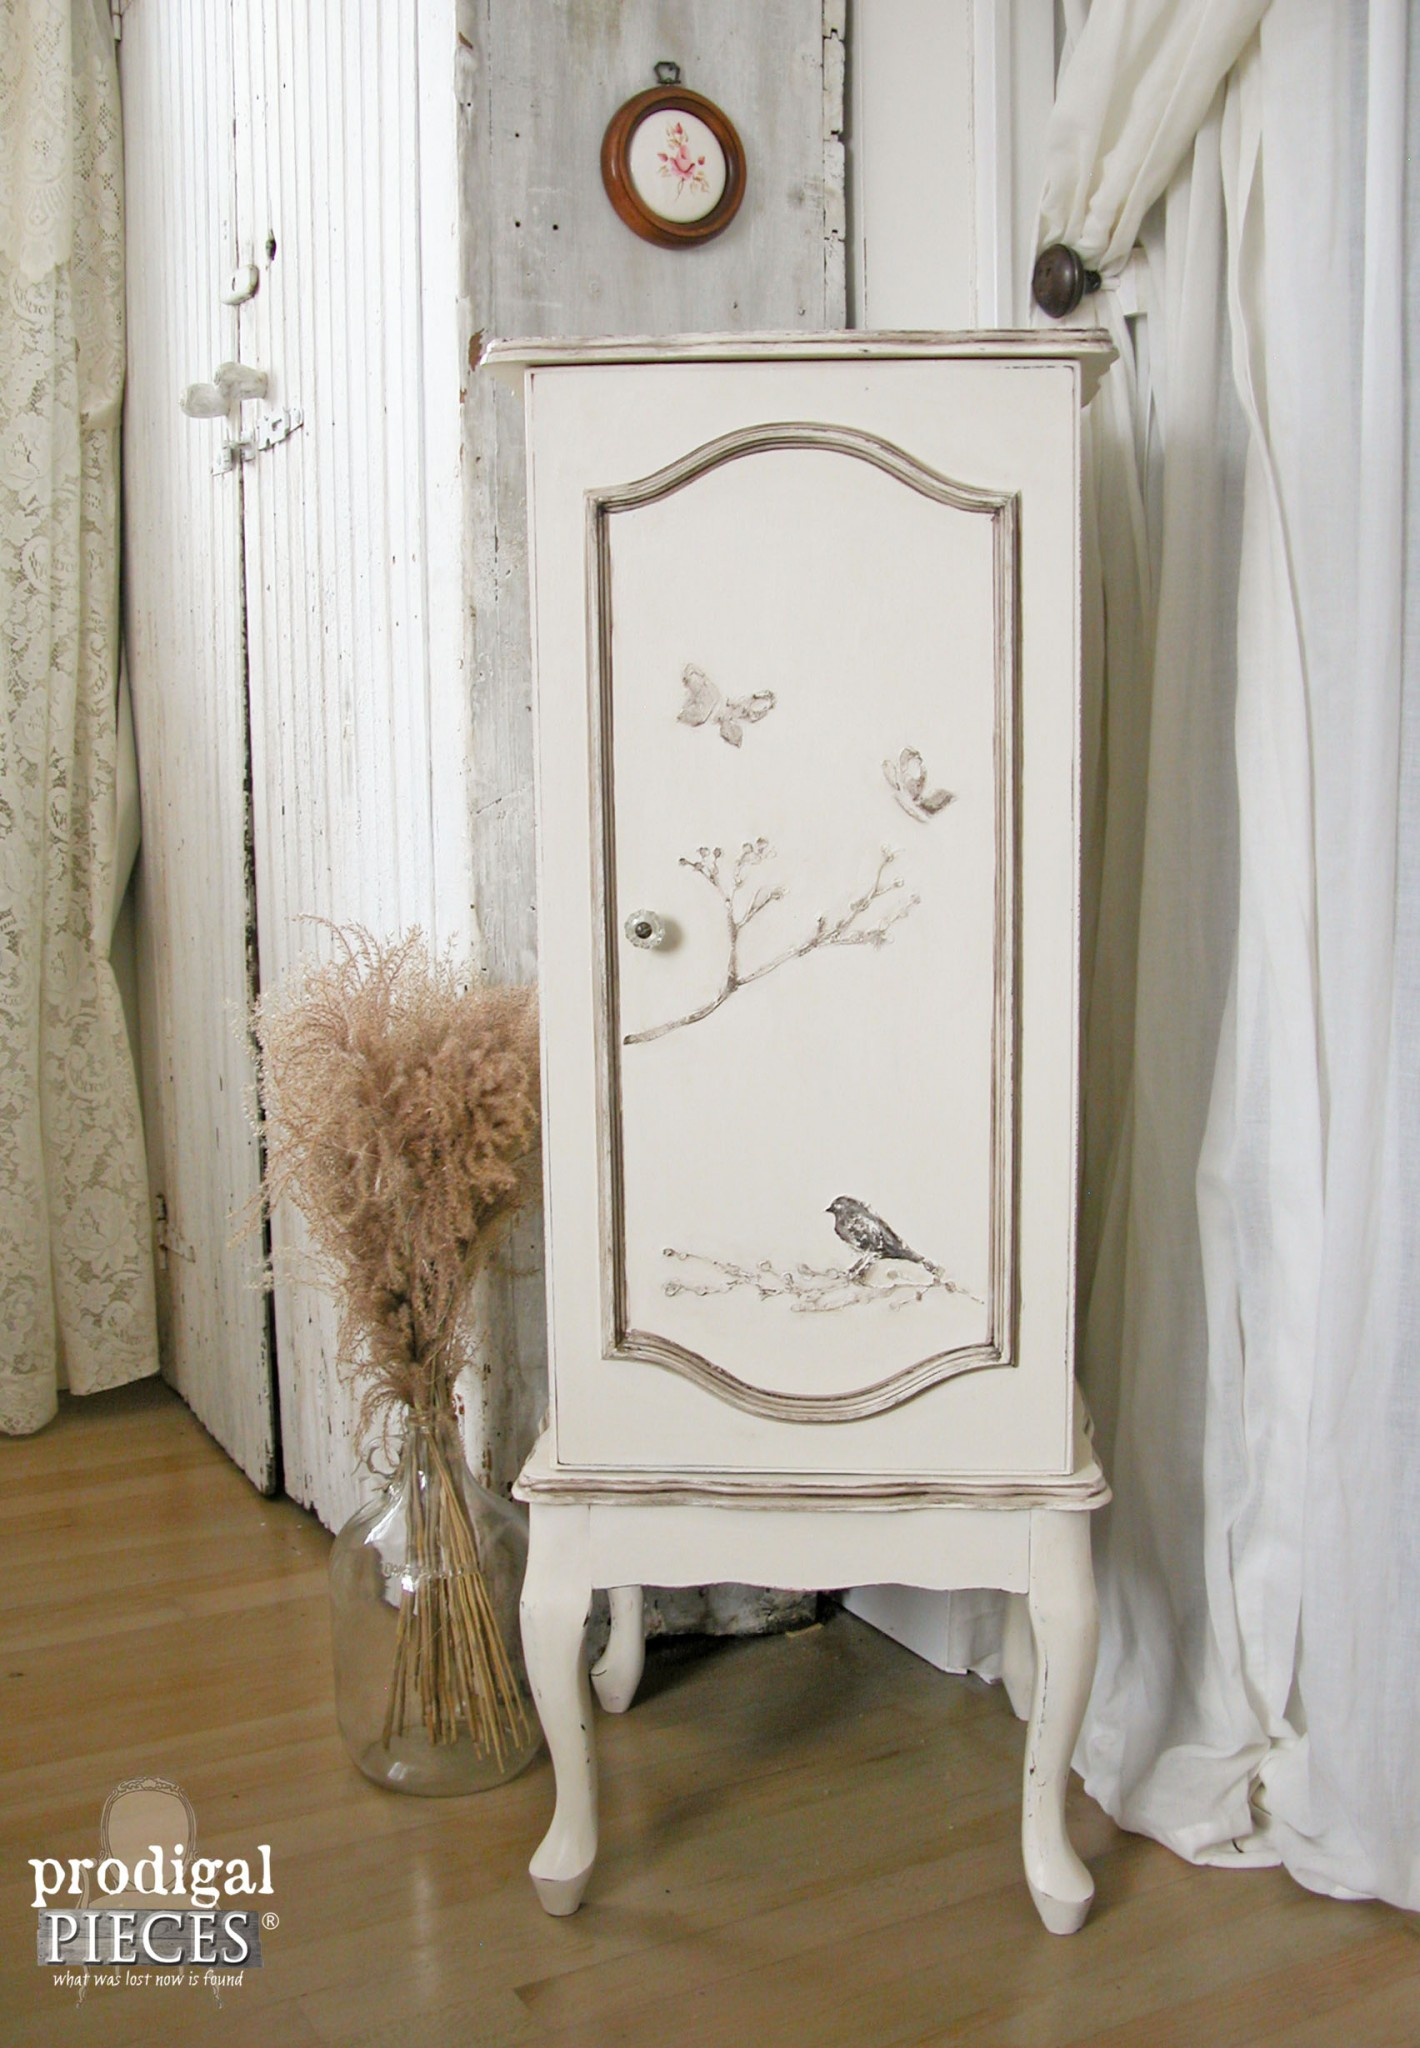 Embossed Birds & Berries Jewelry Armoire by Prodigal Pieces | www.prodigalpieces.com